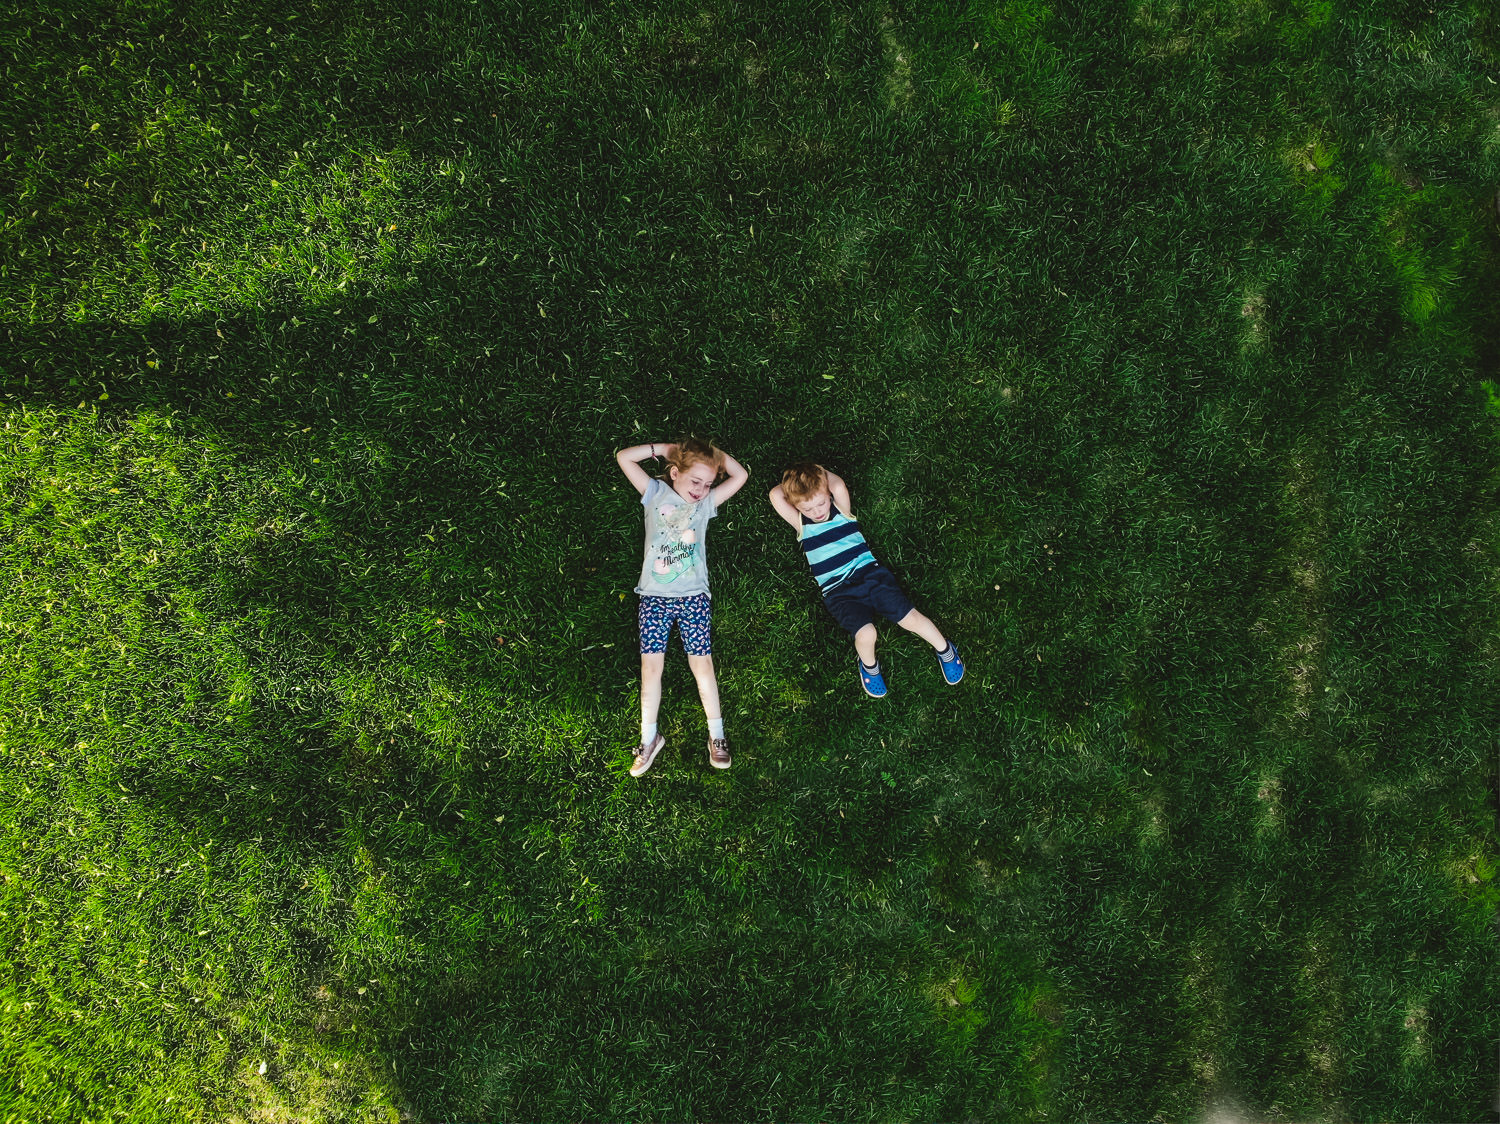 An aerial shot of two children lying on the grass.